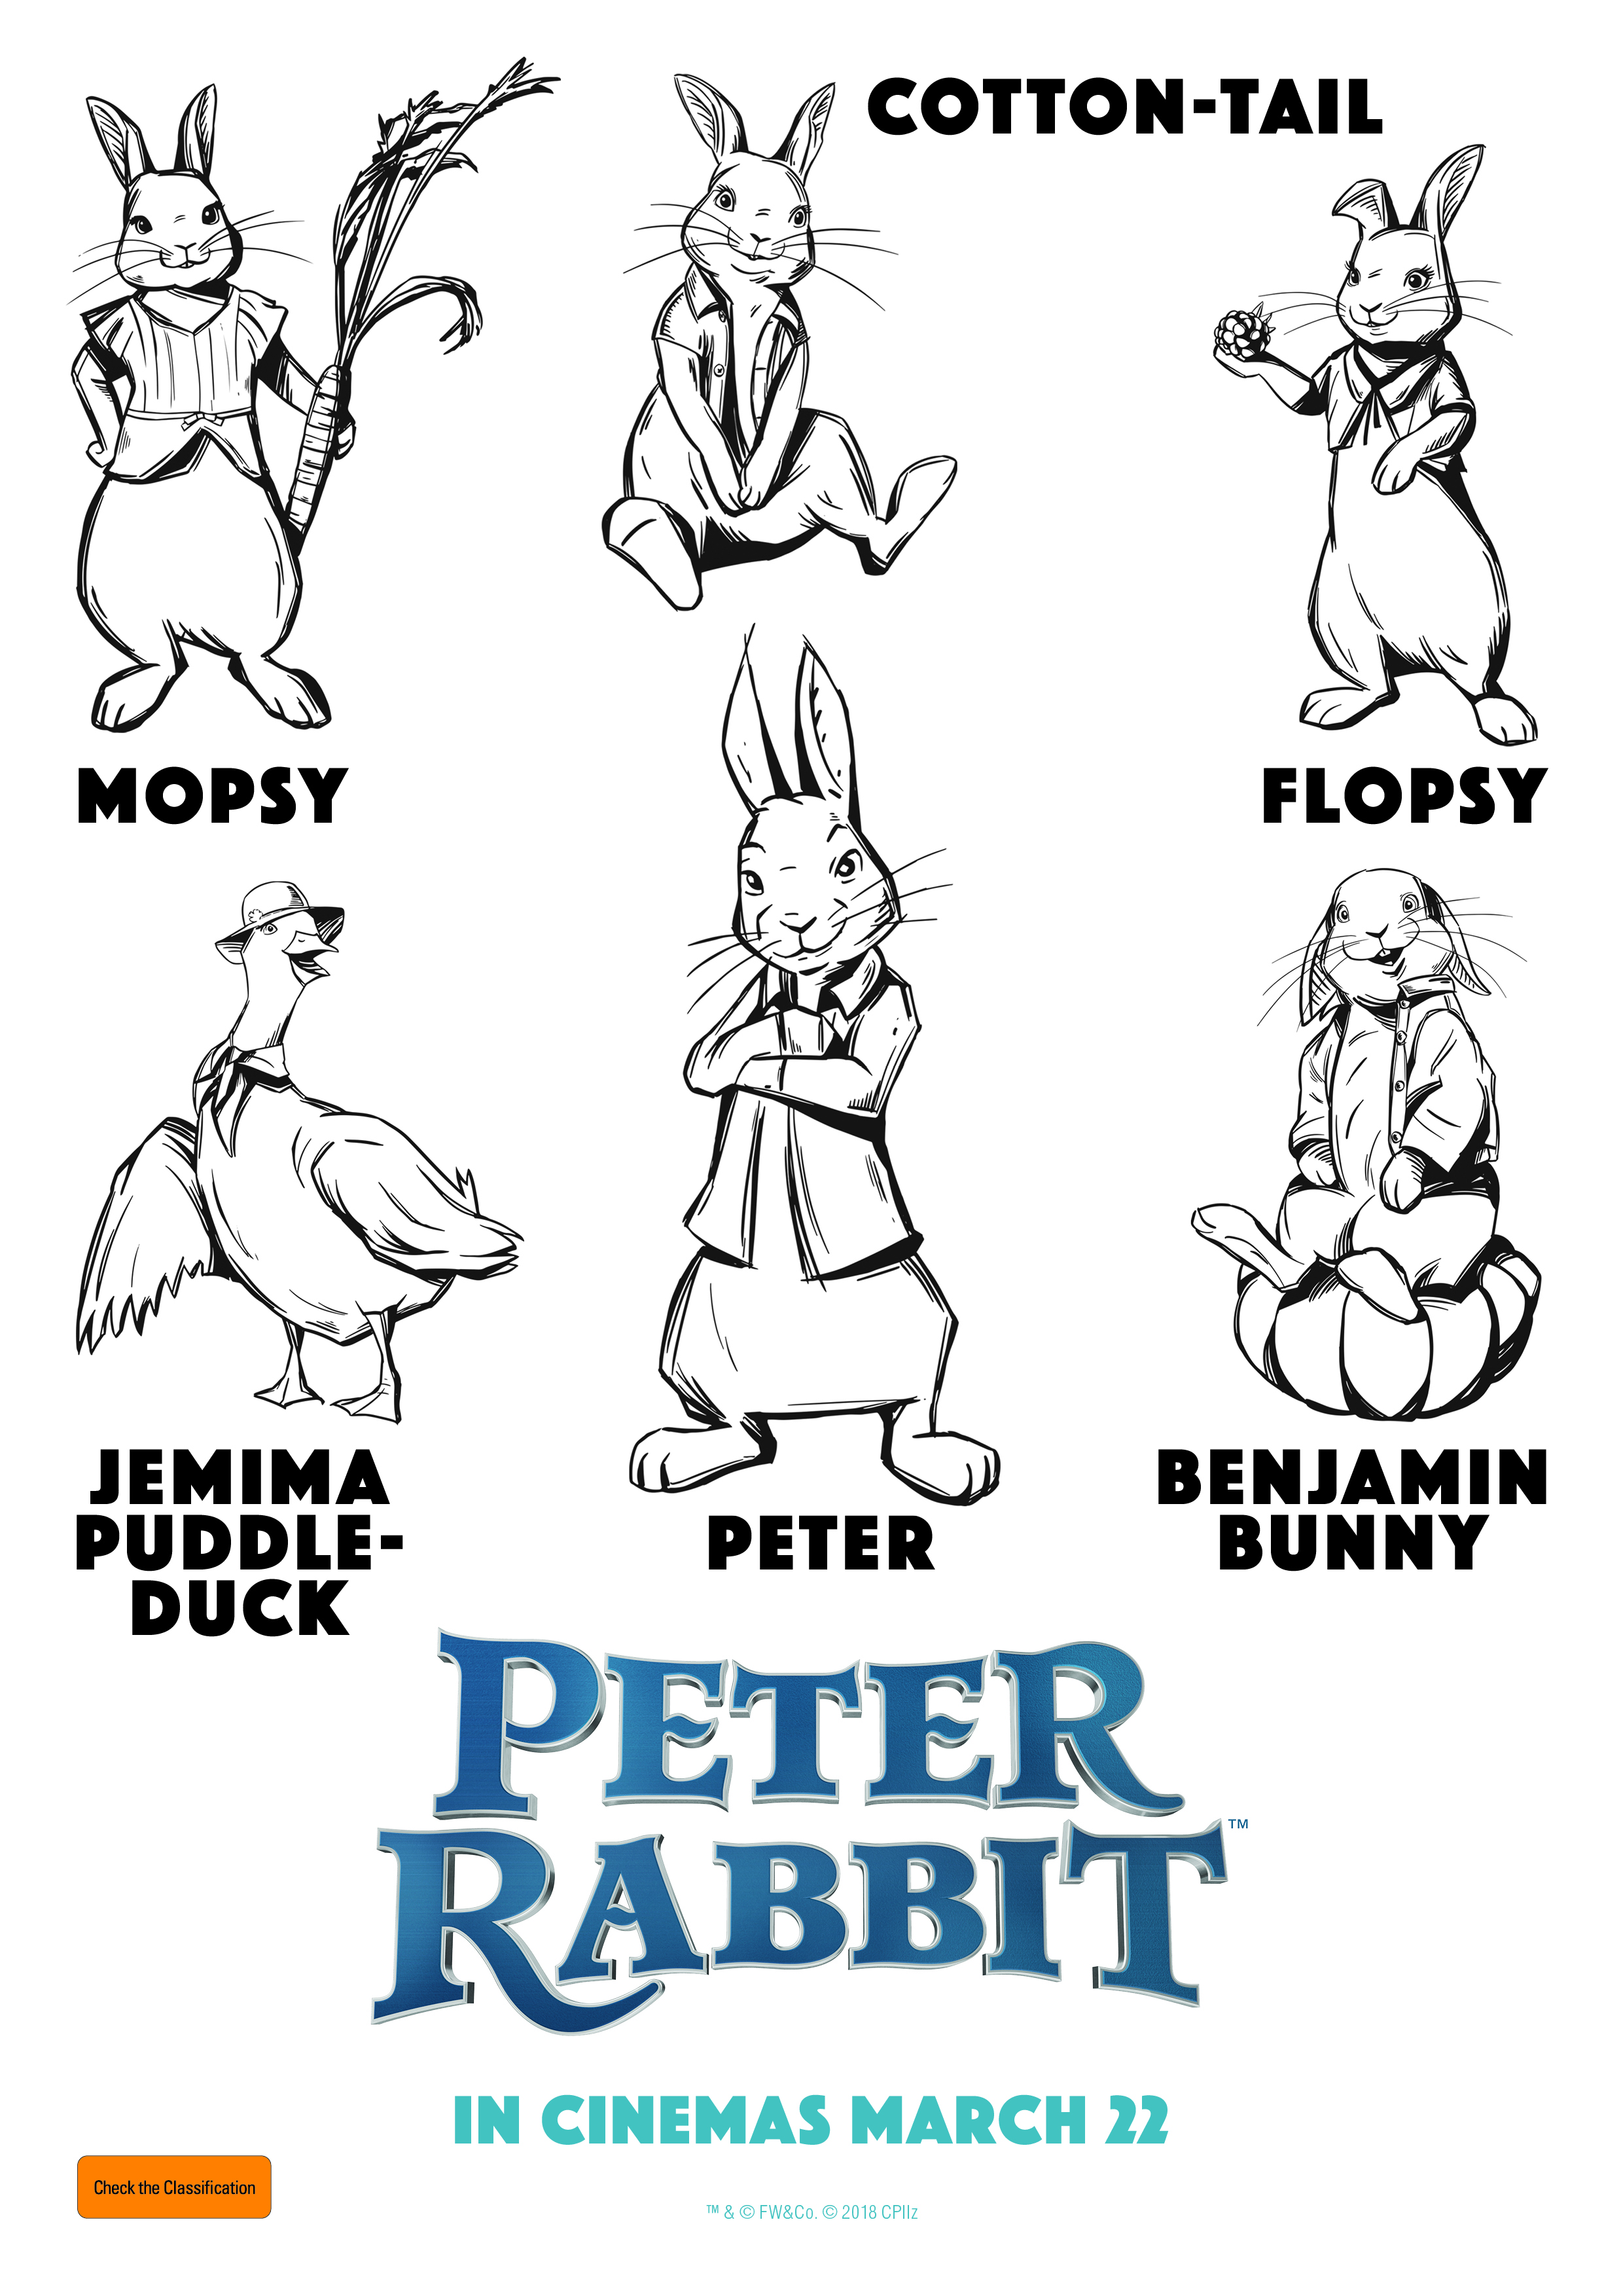 Copy of Peter Rabbit Characters - Free Colouring In Sheets for kids